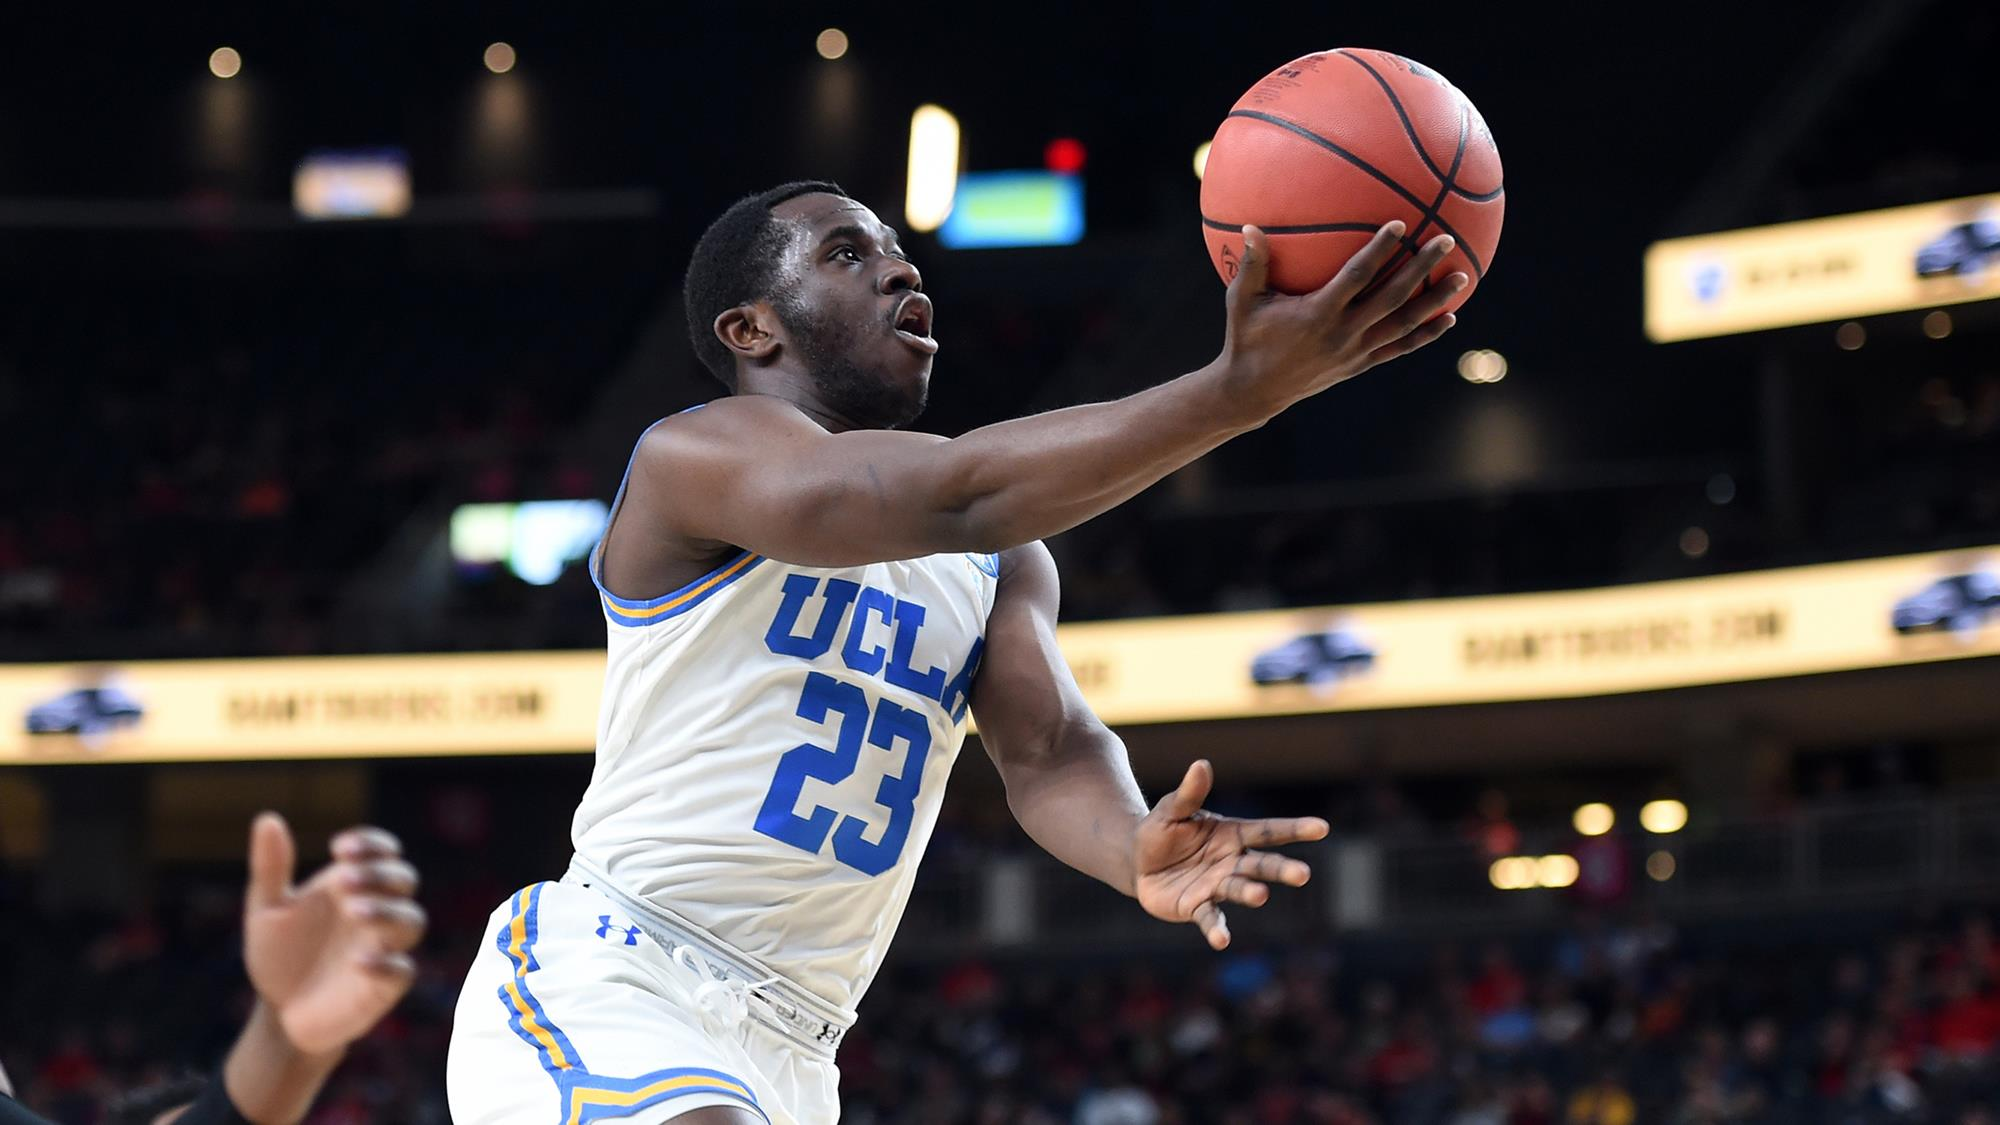 cda3bb088f4 UCLA Hoops to Host Exhibition Game on Saturday - UCLA